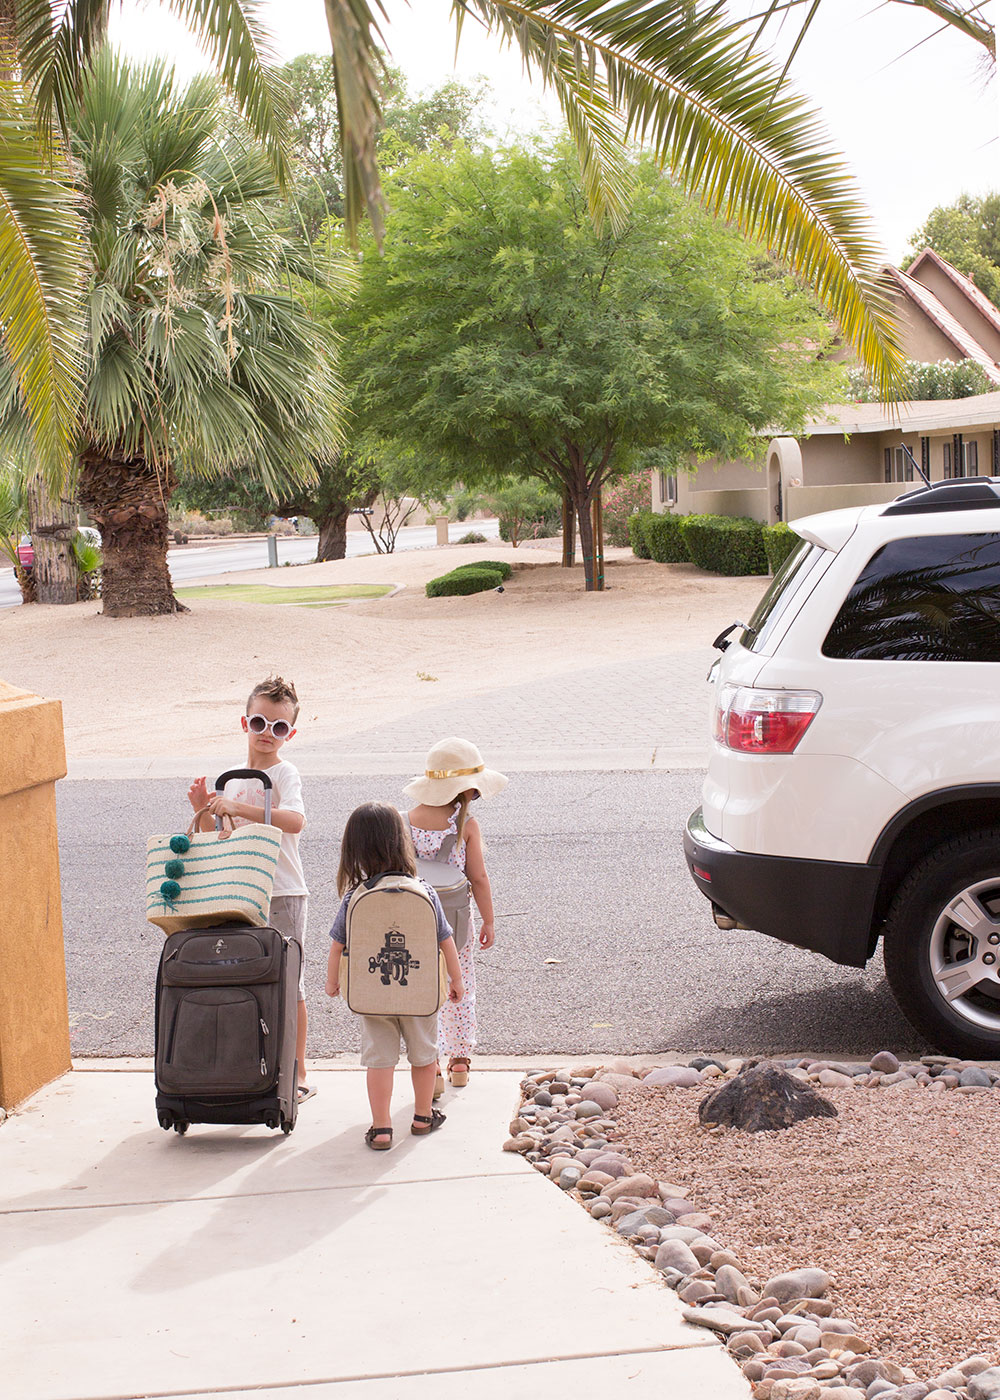 these kids are ready to get on the road | thelovedesingelife.com #summertime #roadtrip #firestonecompleteautocare